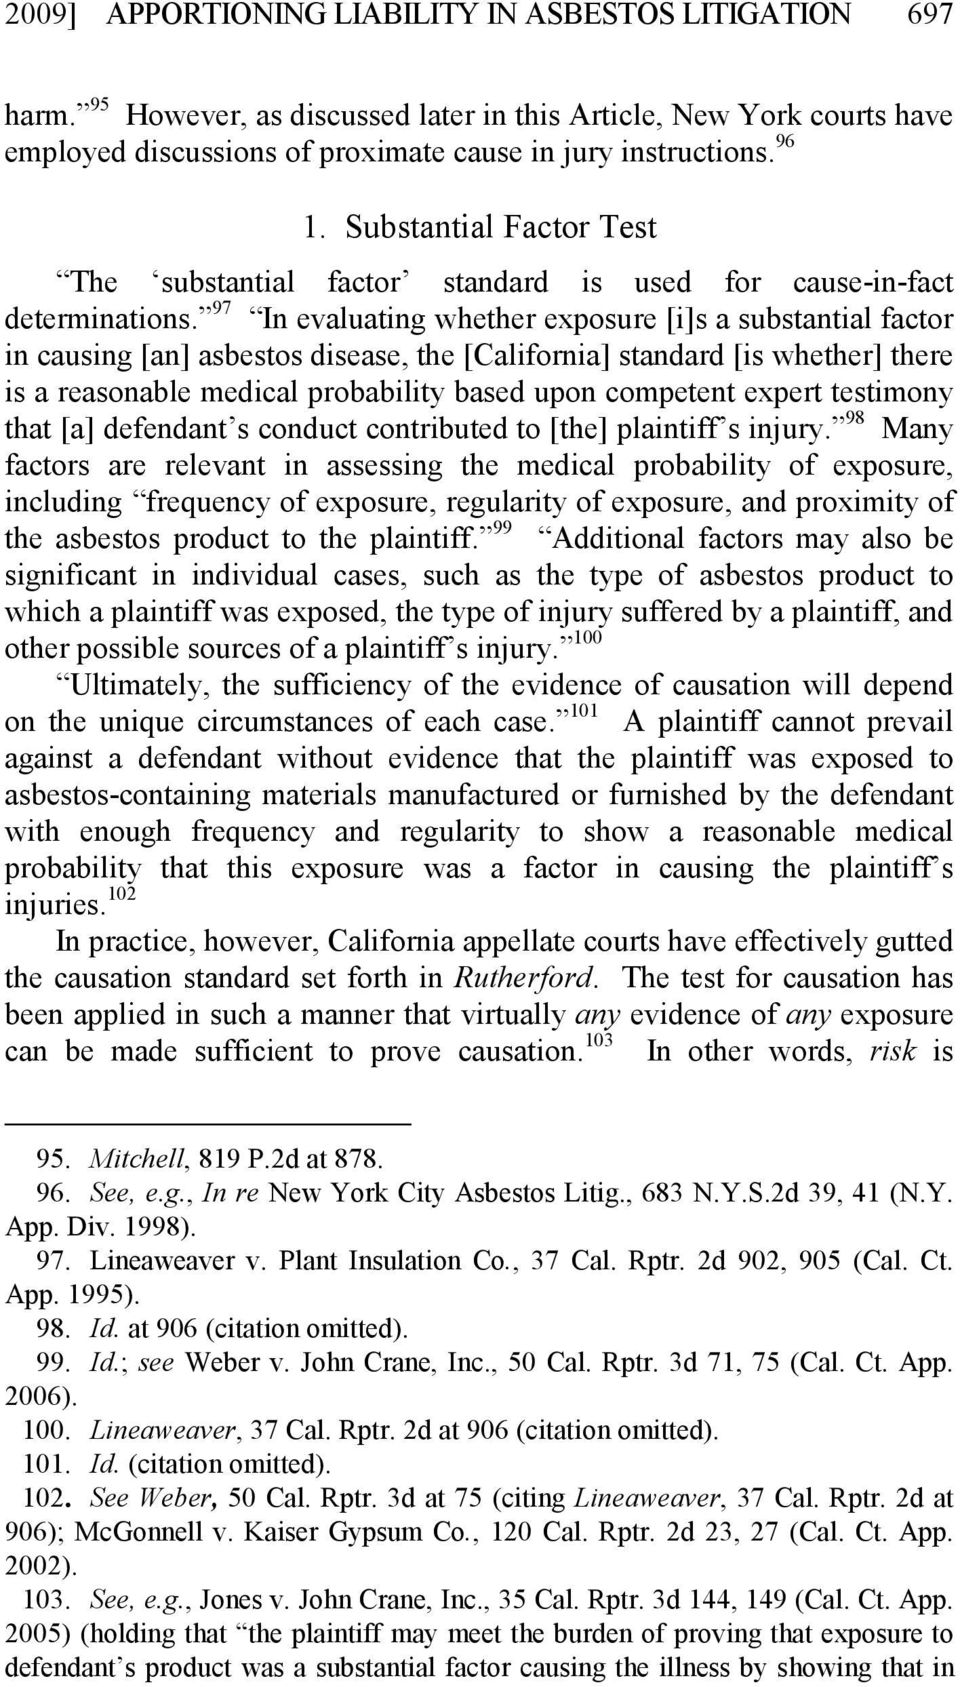 97 In evaluating whether exposure [i]s a substantial factor in causing [an] asbestos disease, the [California] standard [is whether] there is a reasonable medical probability based upon competent